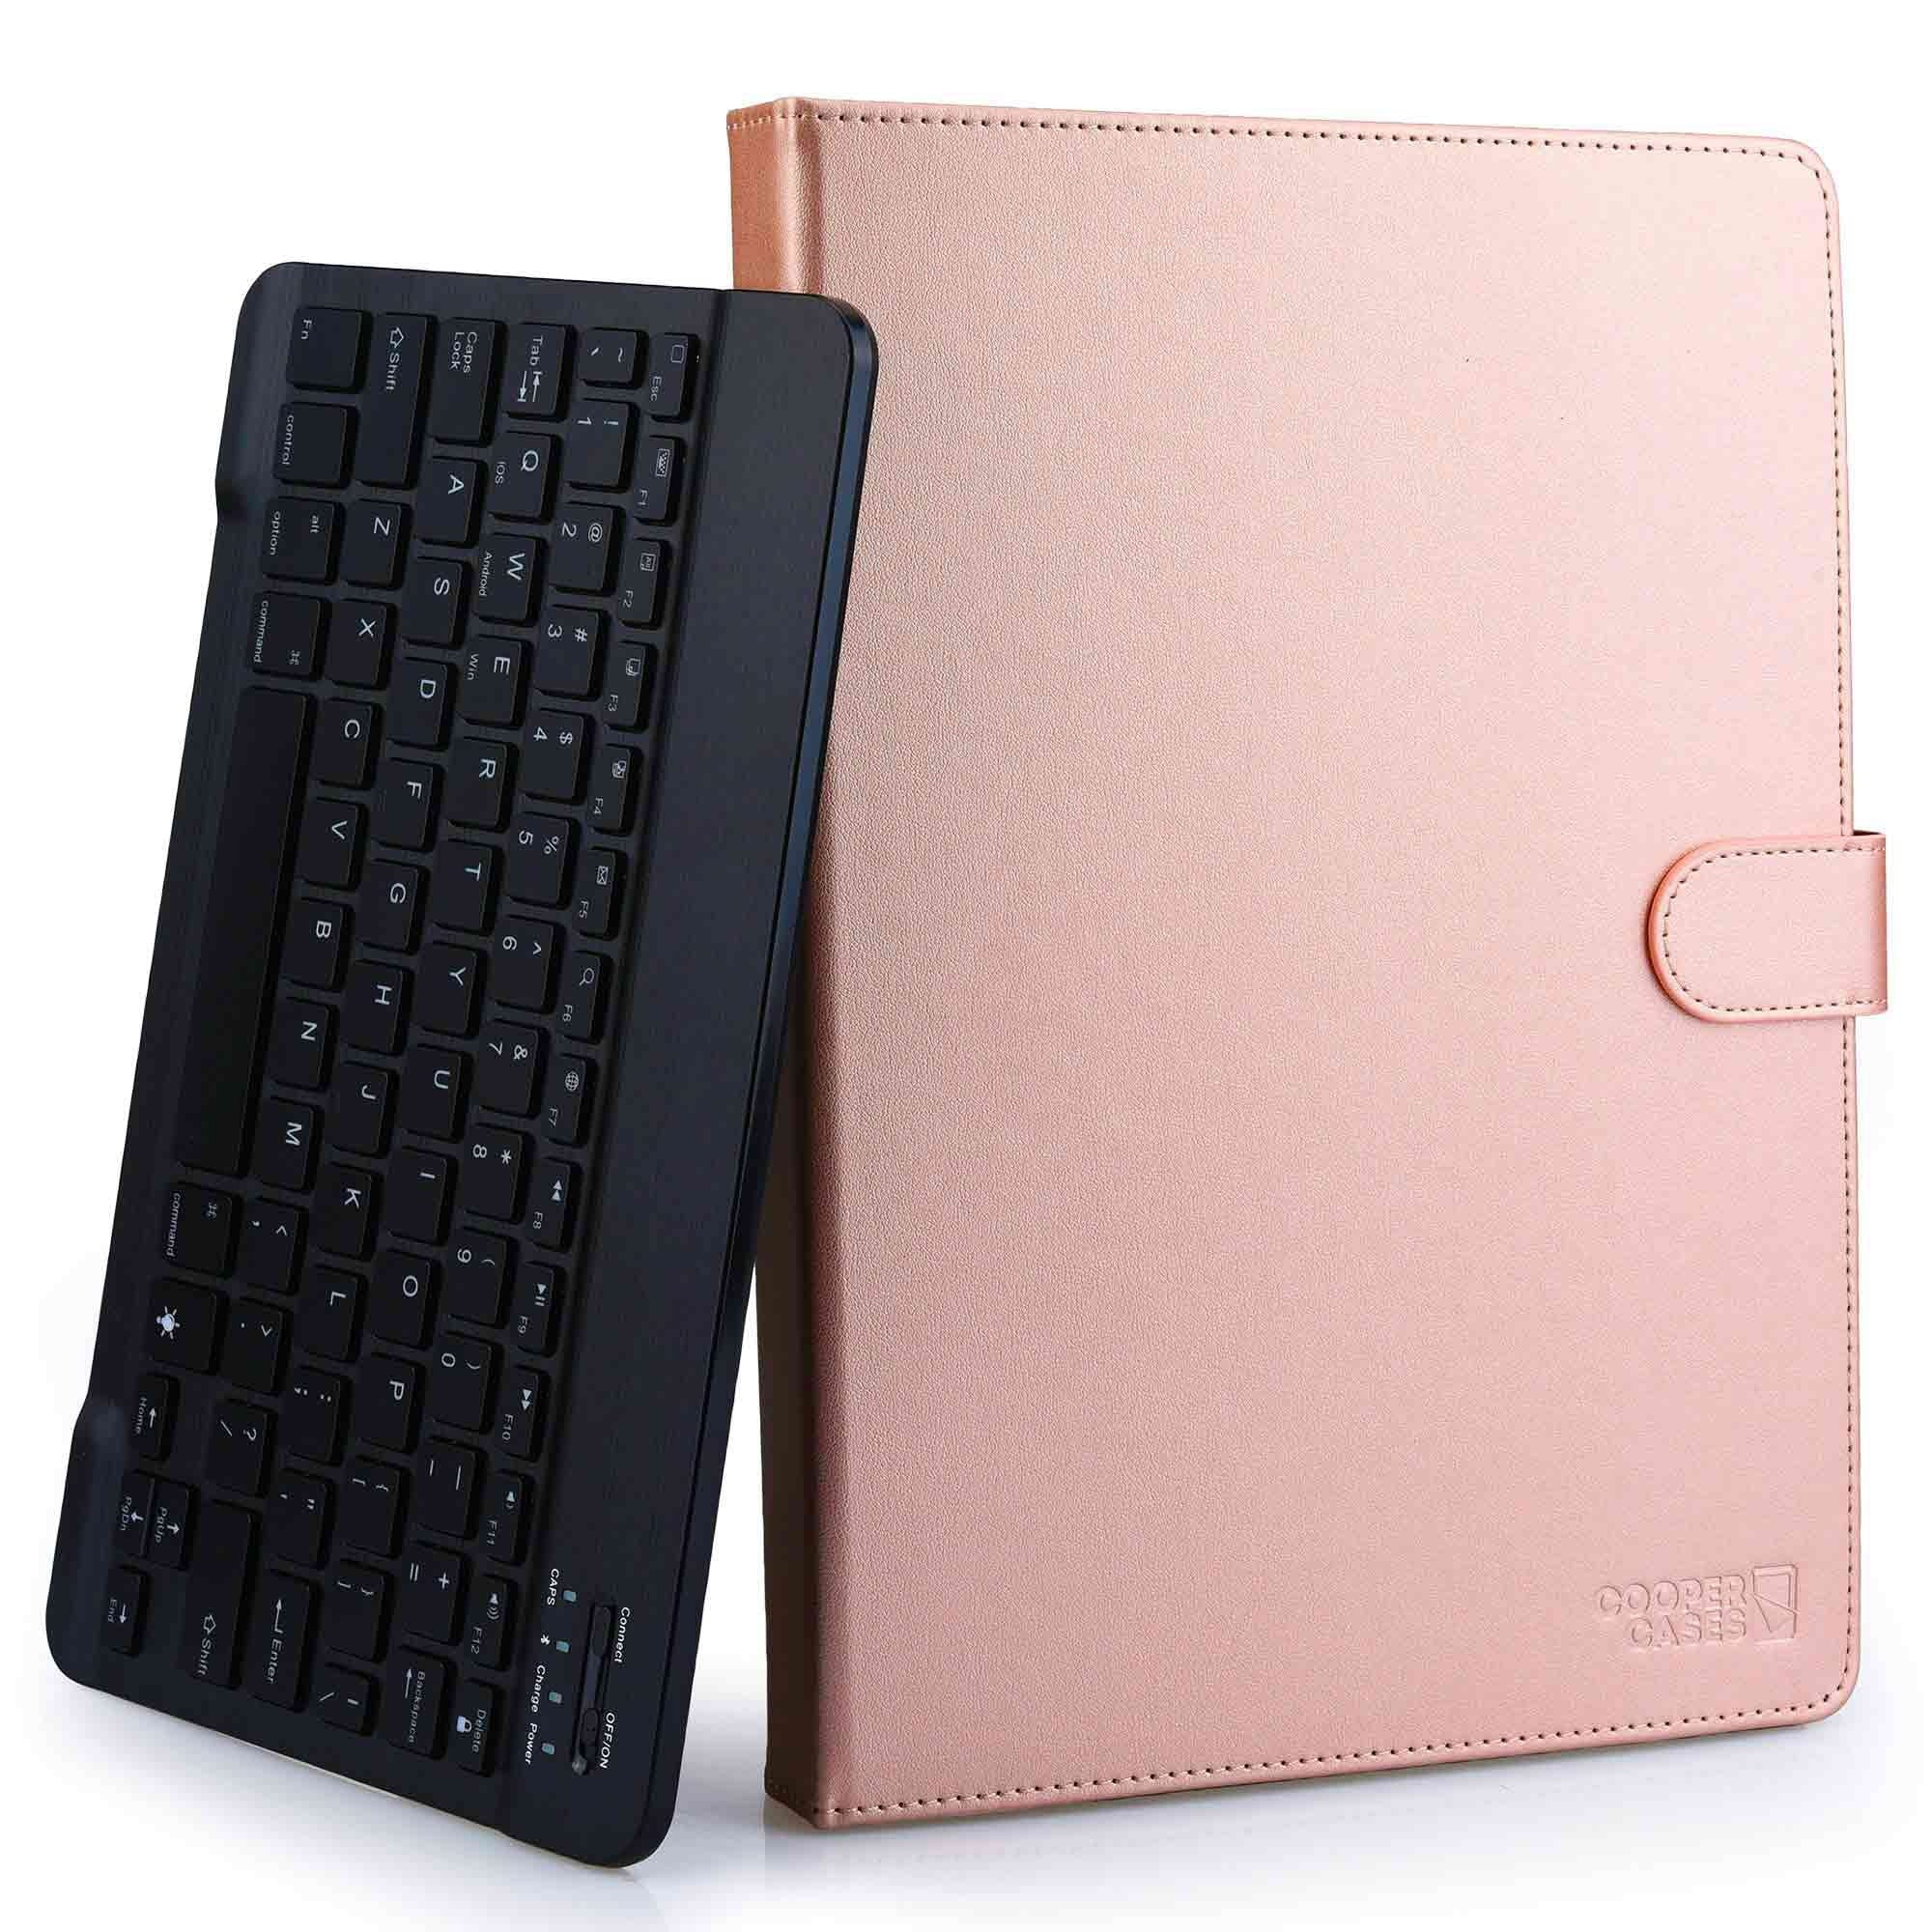 "Cooper Backlight Executive Universal Bluetooth Keyboard Folio for 9-10.5"" Tablets (with Backlit keys)"